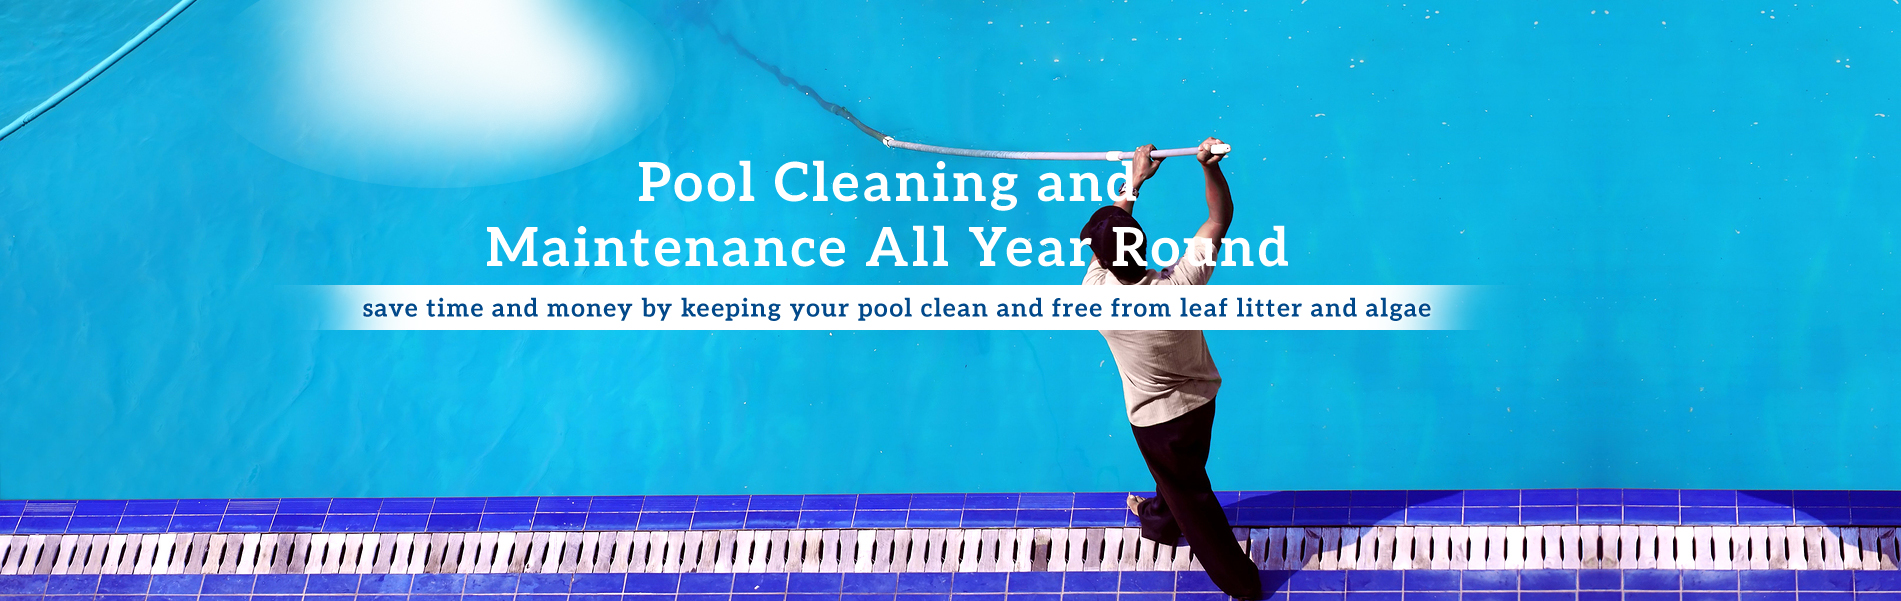 North brisbane pool care north lakes queensland - This gas helps keep swimming pools clean ...